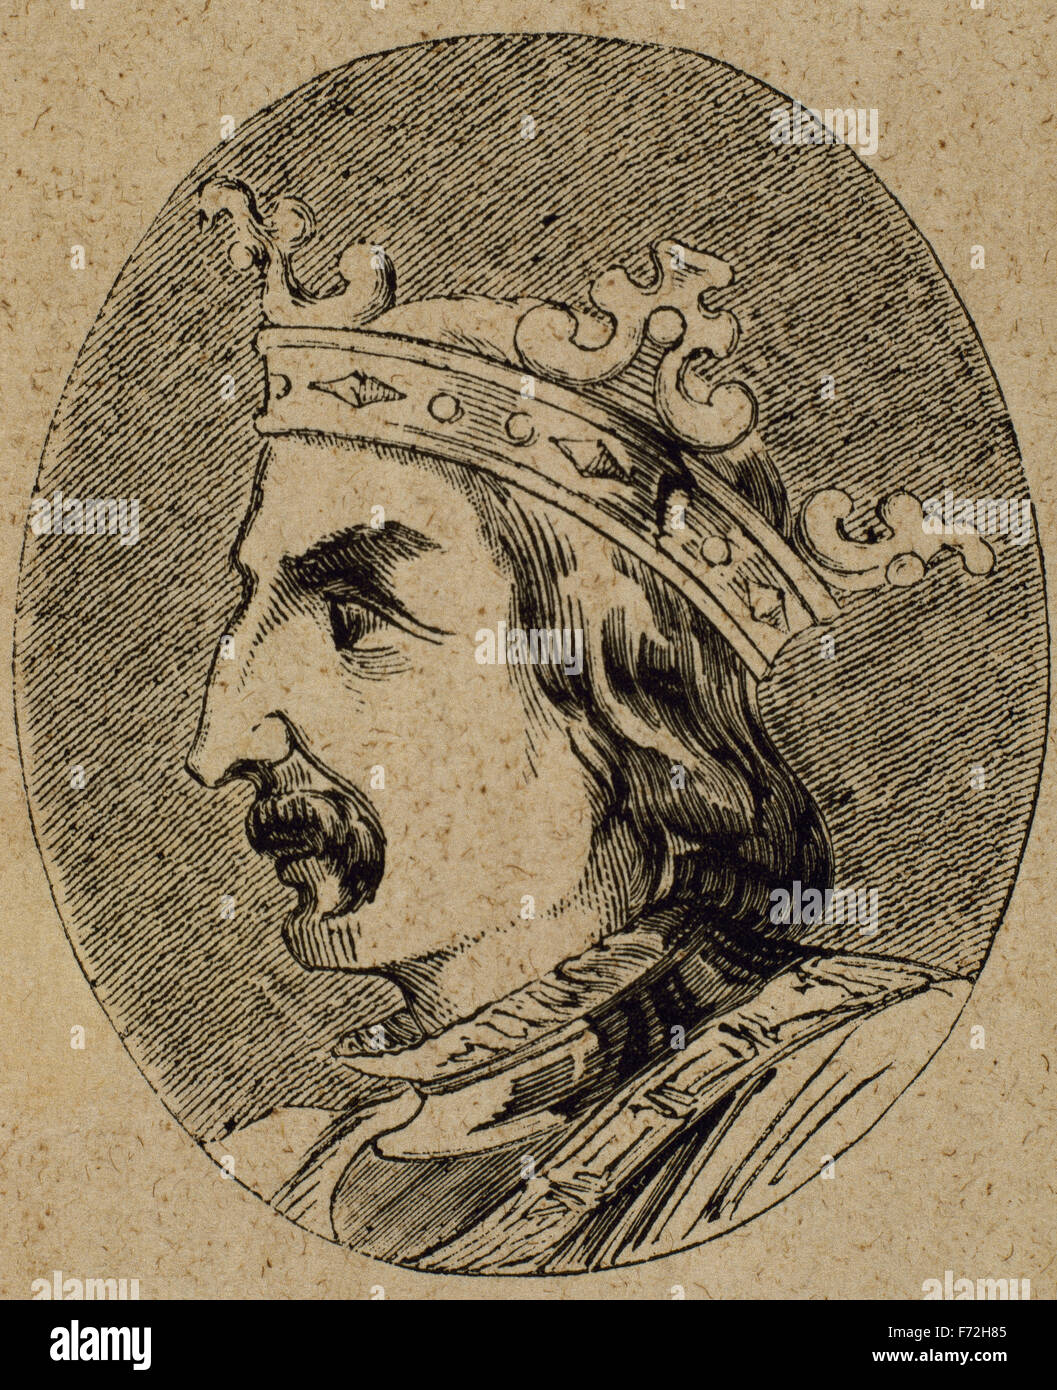 Sancho IV of Castile (1258-1295). King of Castille, Leon and Galicia from 1284-1295. Portrait. Engraving. - Stock Image